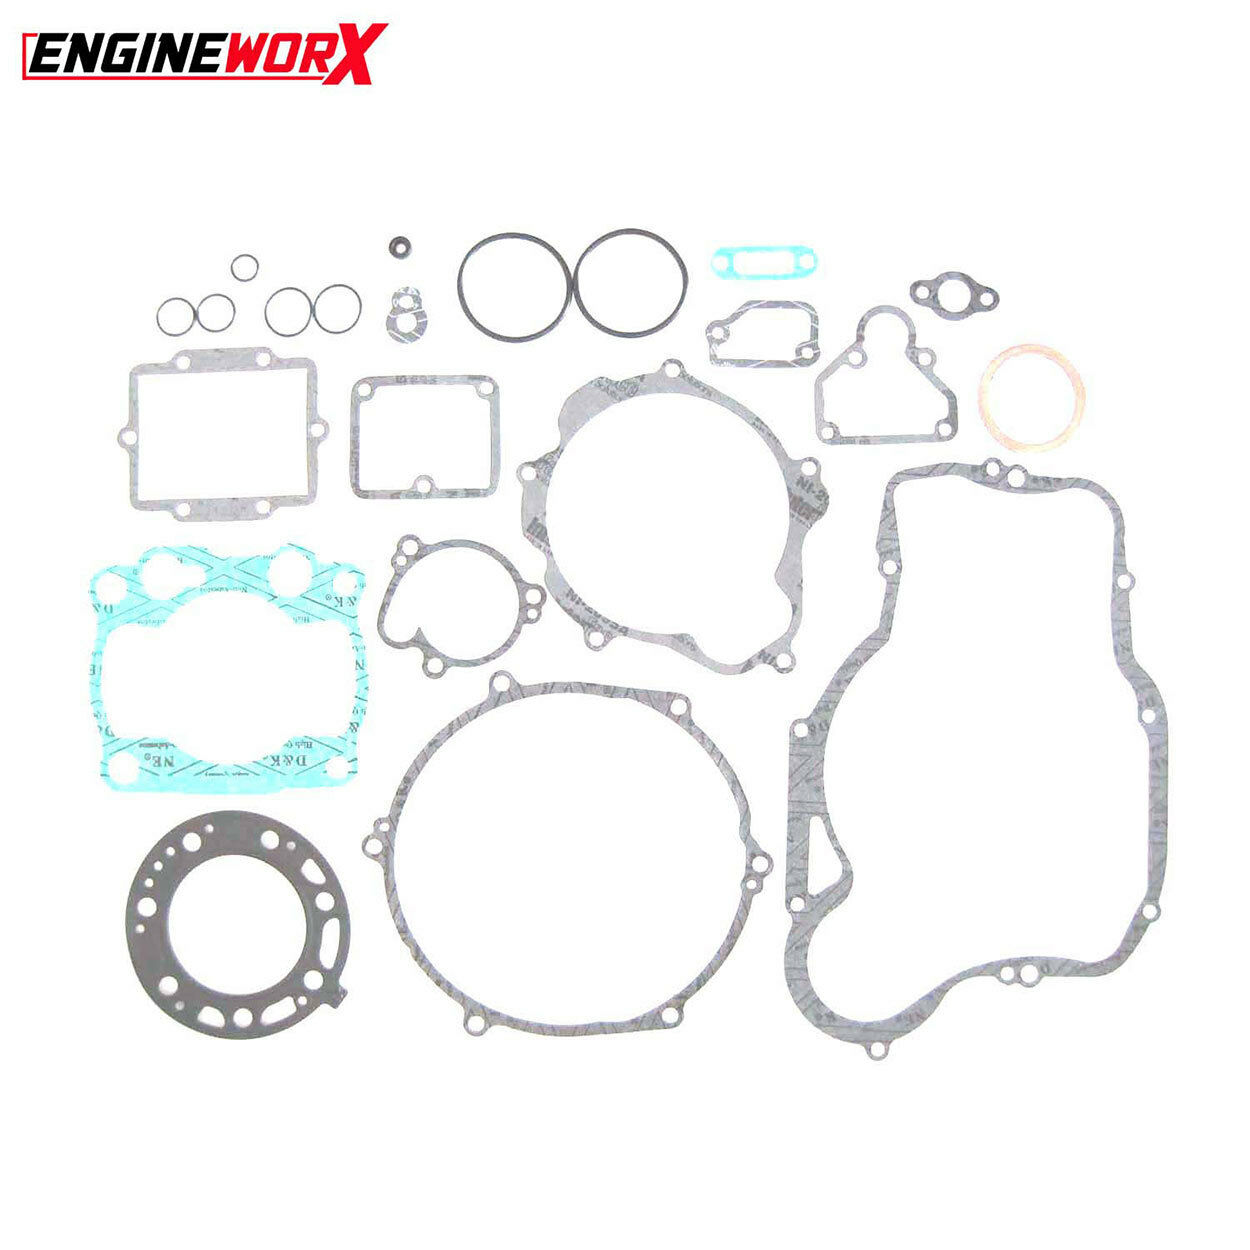 New Kawasaki Kx 250 04 Engineworx Full Engine Gasket Kit Set Kx250 Wiring Harness Complete Motocross 1 Of 1only Available